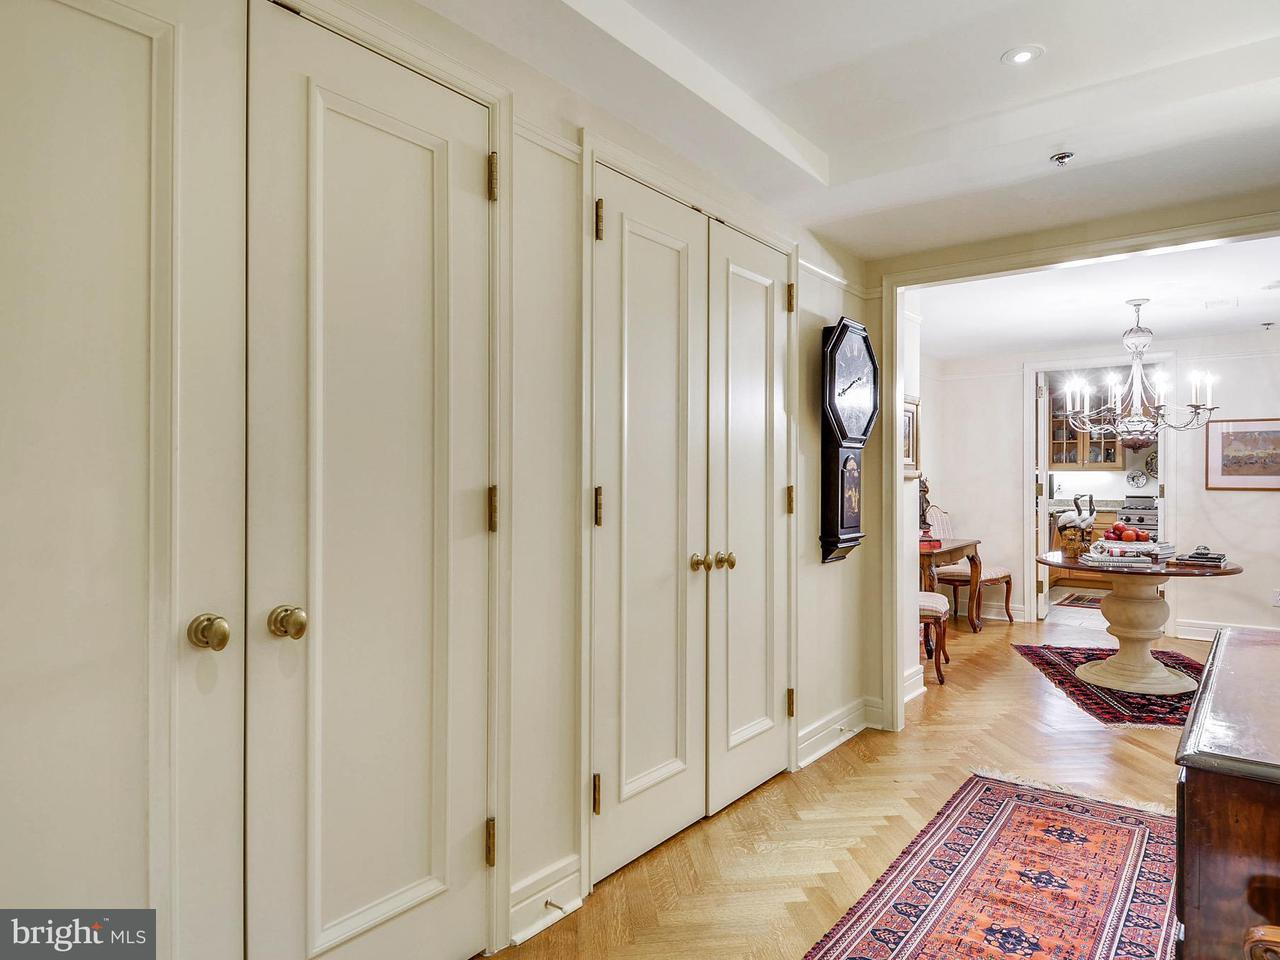 Additional photo for property listing at 1155 23rd St NW #2e  Washington, District Of Columbia 20037 United States